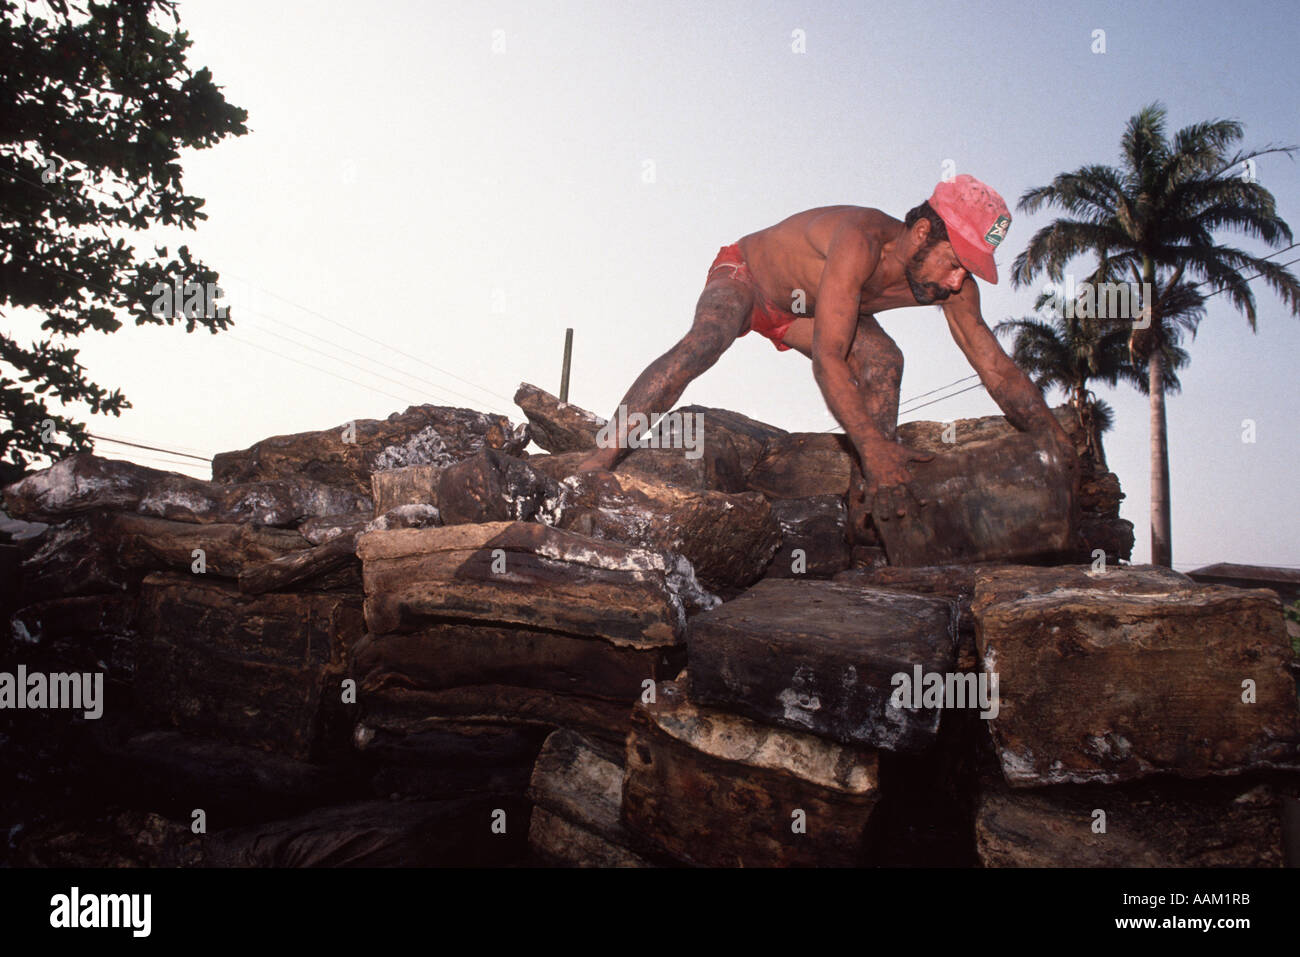 Amazon Brazil Workers Loading Rubber In Truck Exportation Of - Natural resources of brazil